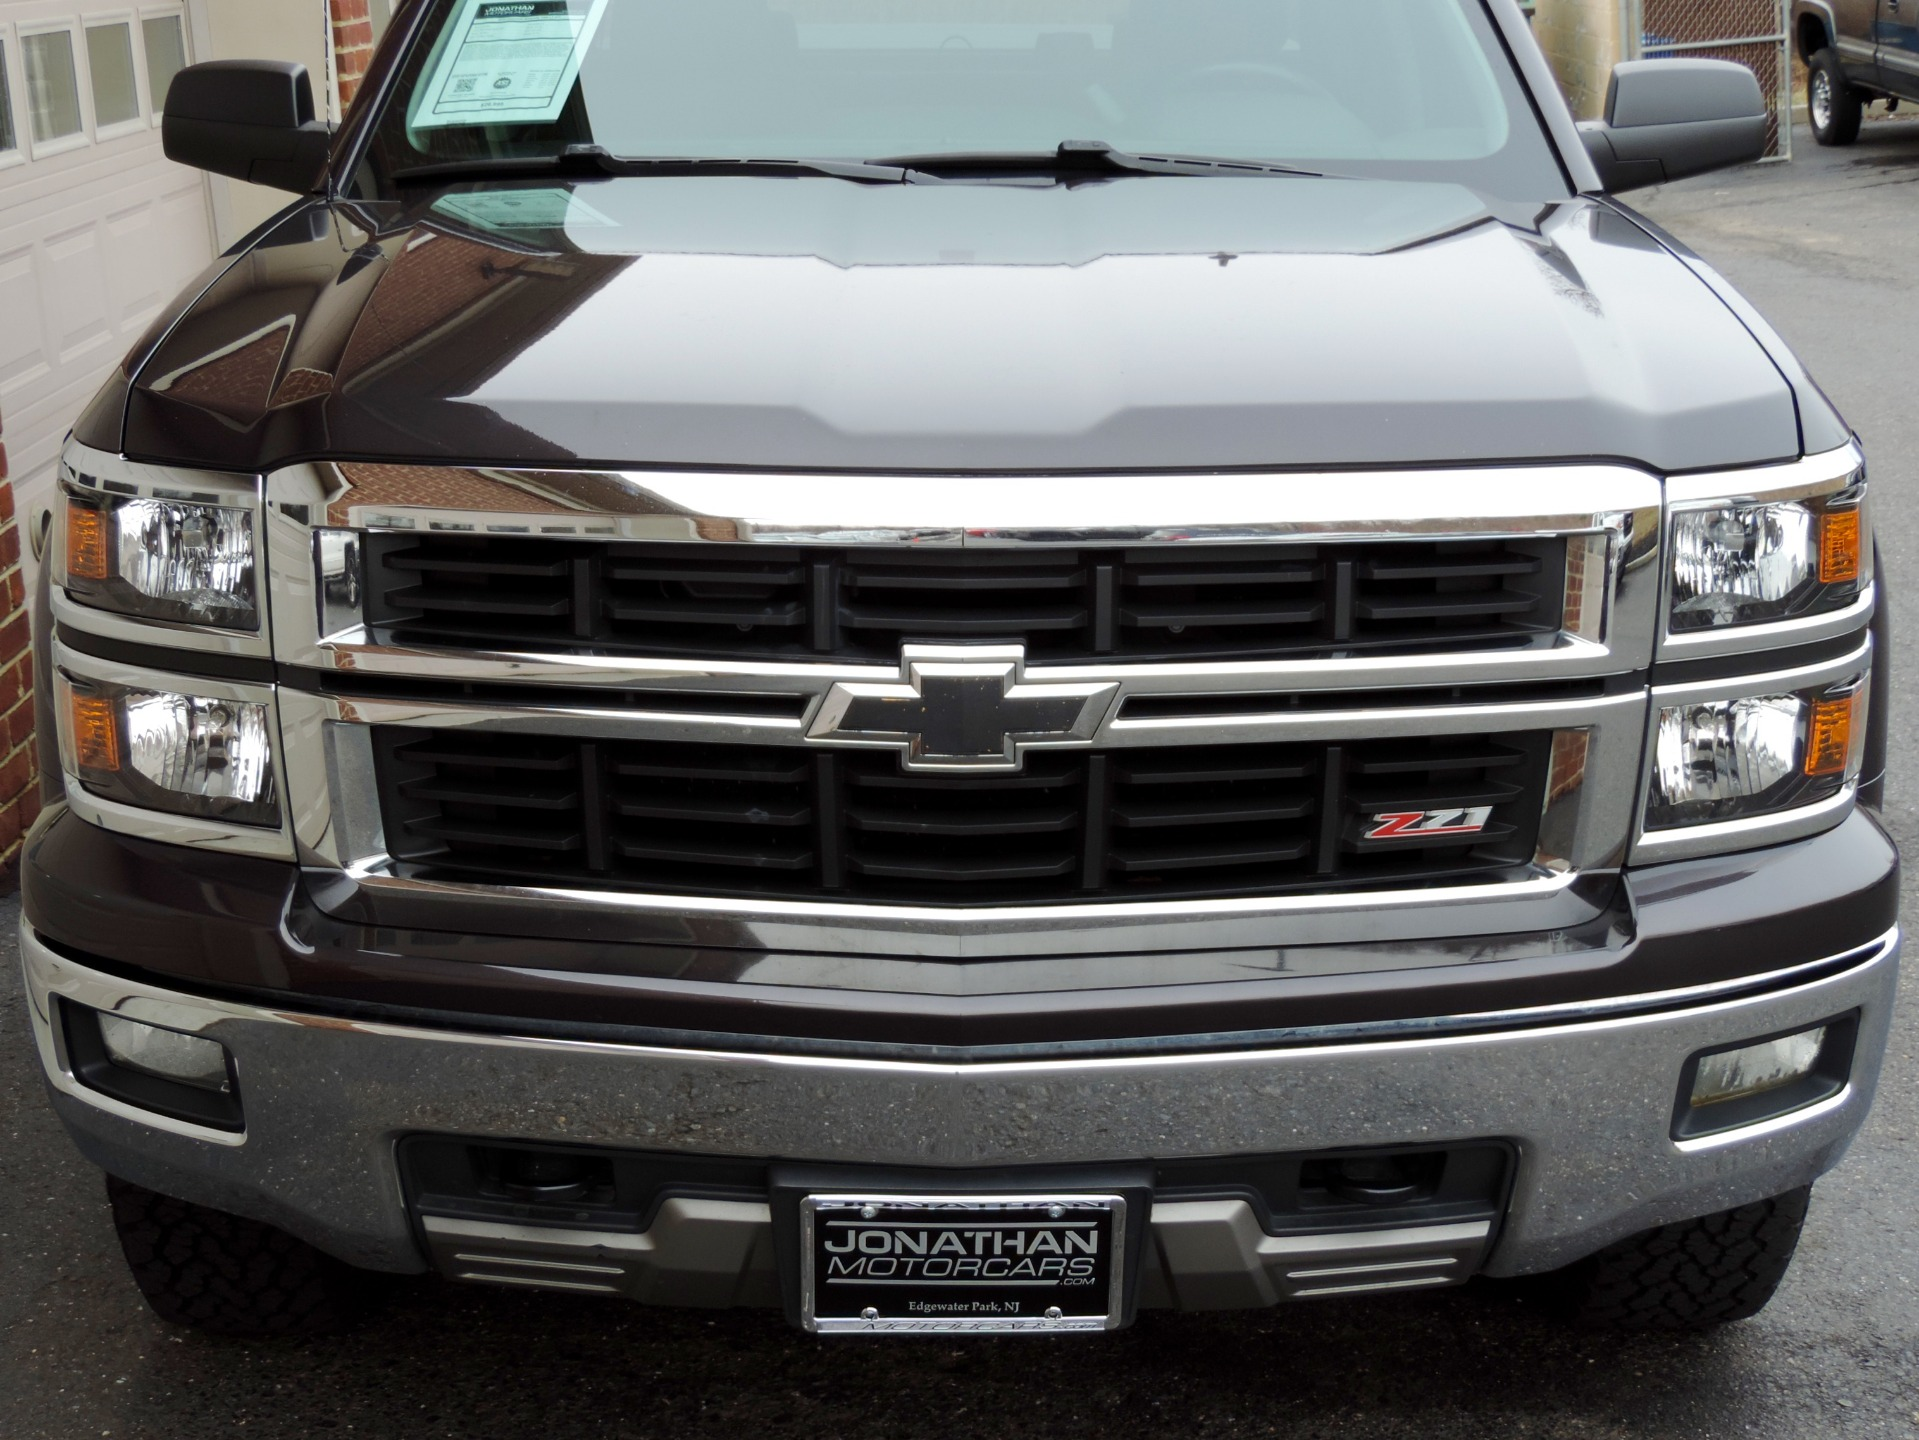 2014 chevrolet silverado 1500 lt z71 stock 441661 for sale near edgewater park nj nj. Black Bedroom Furniture Sets. Home Design Ideas